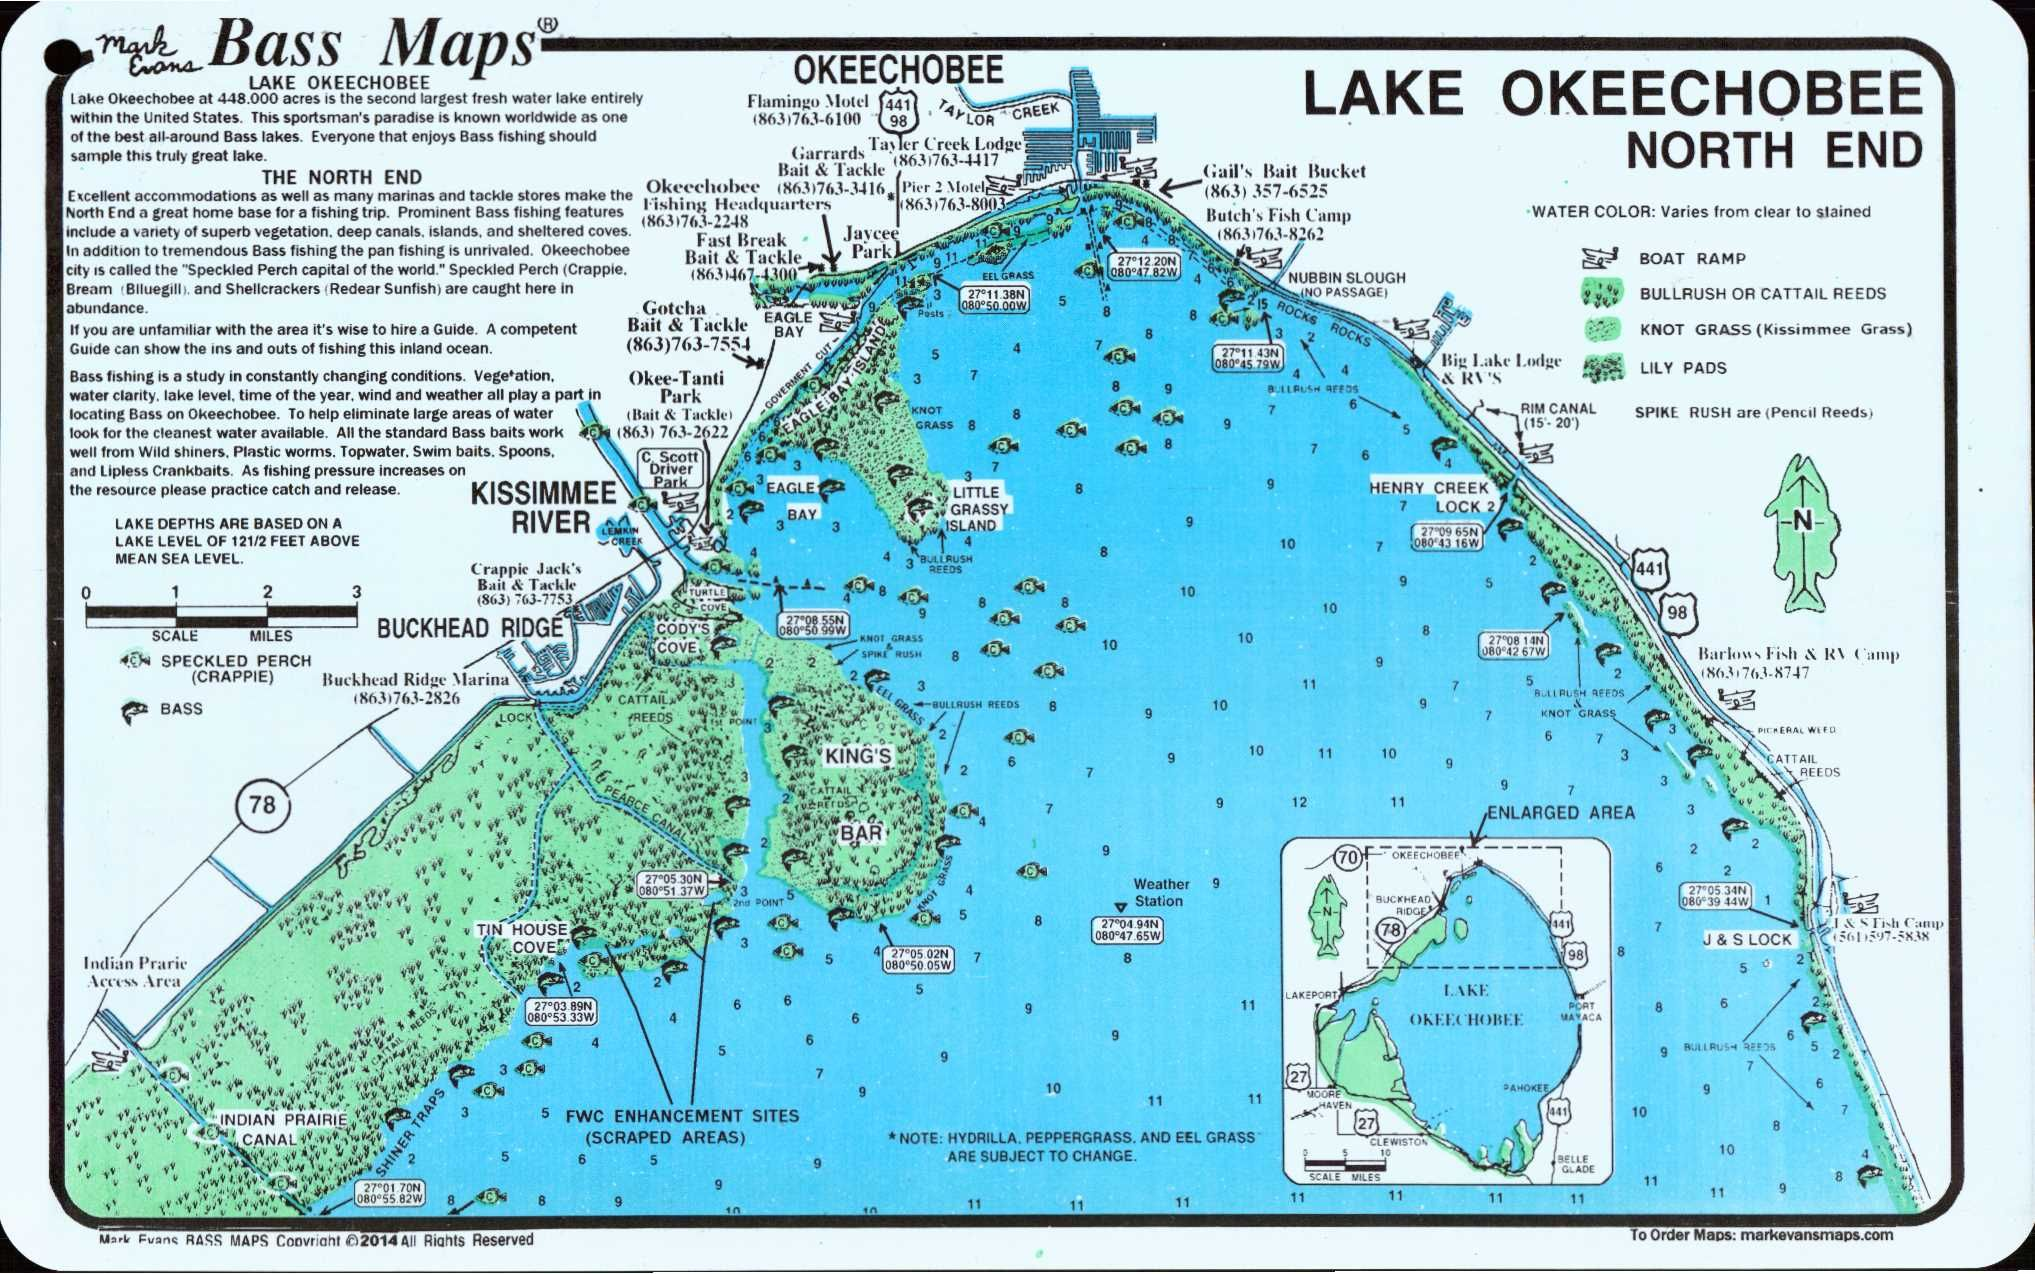 lake okeechobee map lake okeechobee north north end